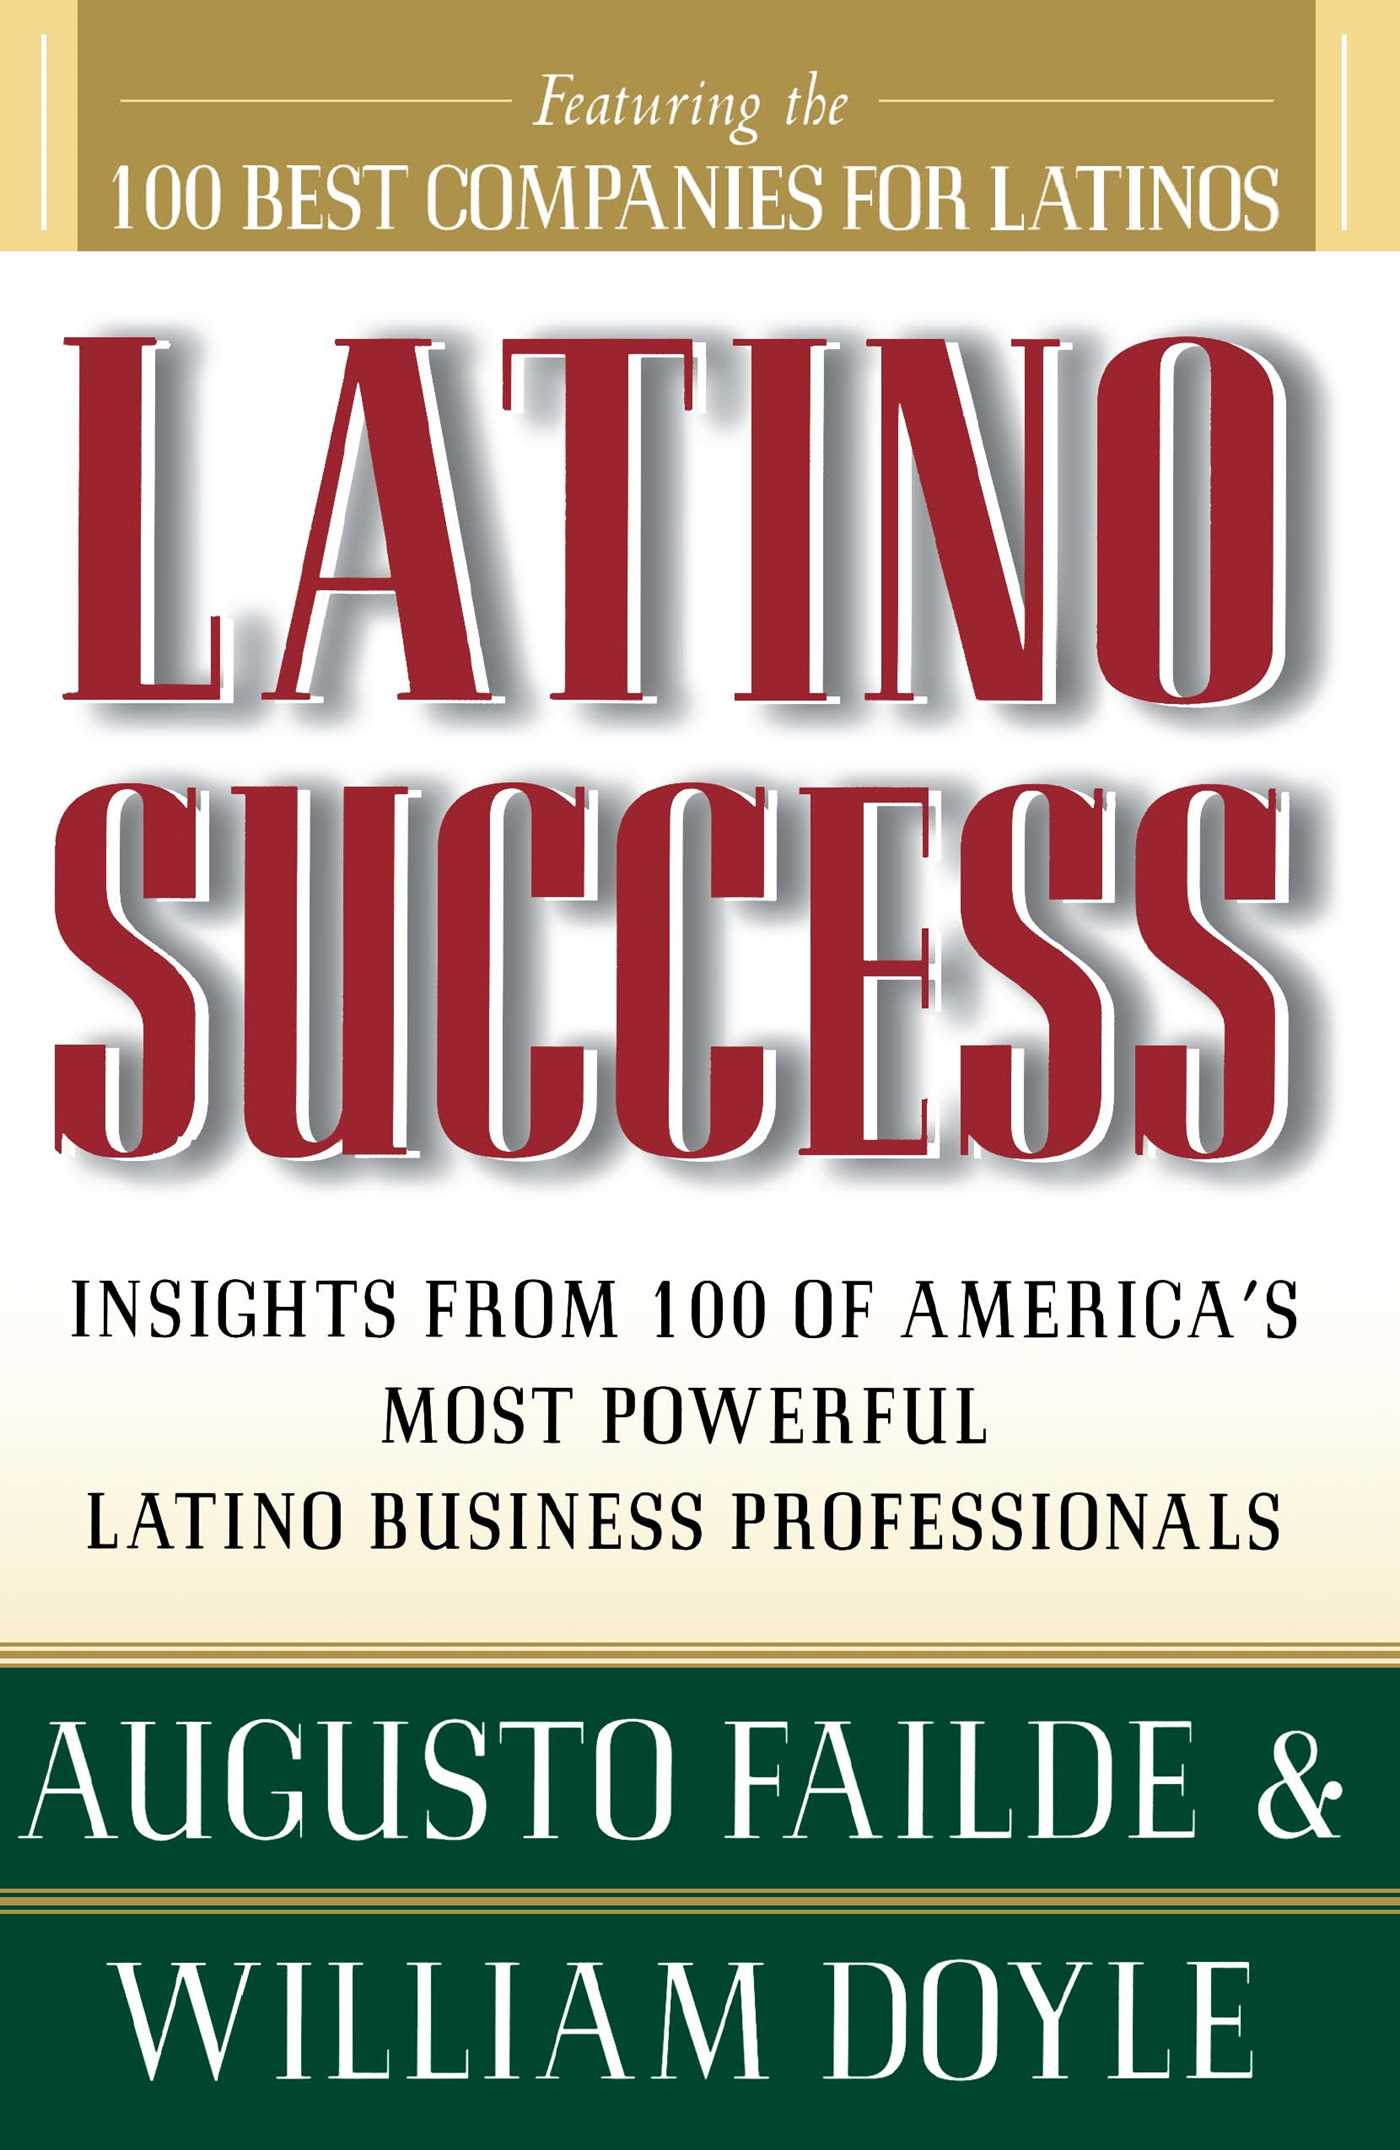 Latino-success-9780684833422_hr